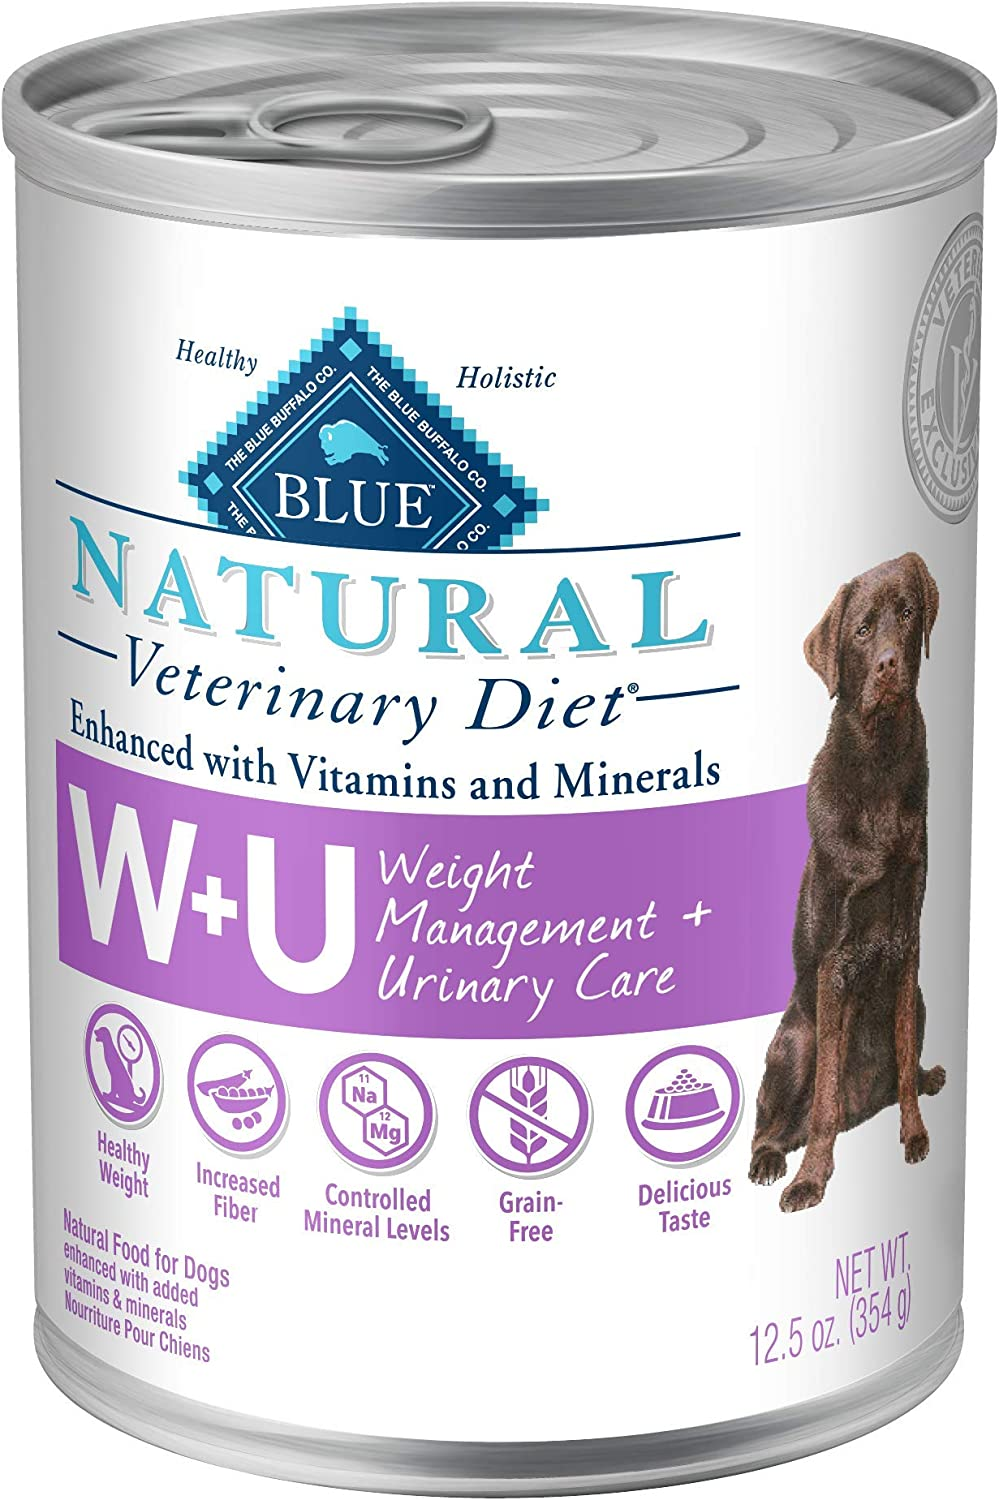 Blue Buffalo Natural Veterinary Diet Weight Management Urinary Care for Dogs 12.5oz